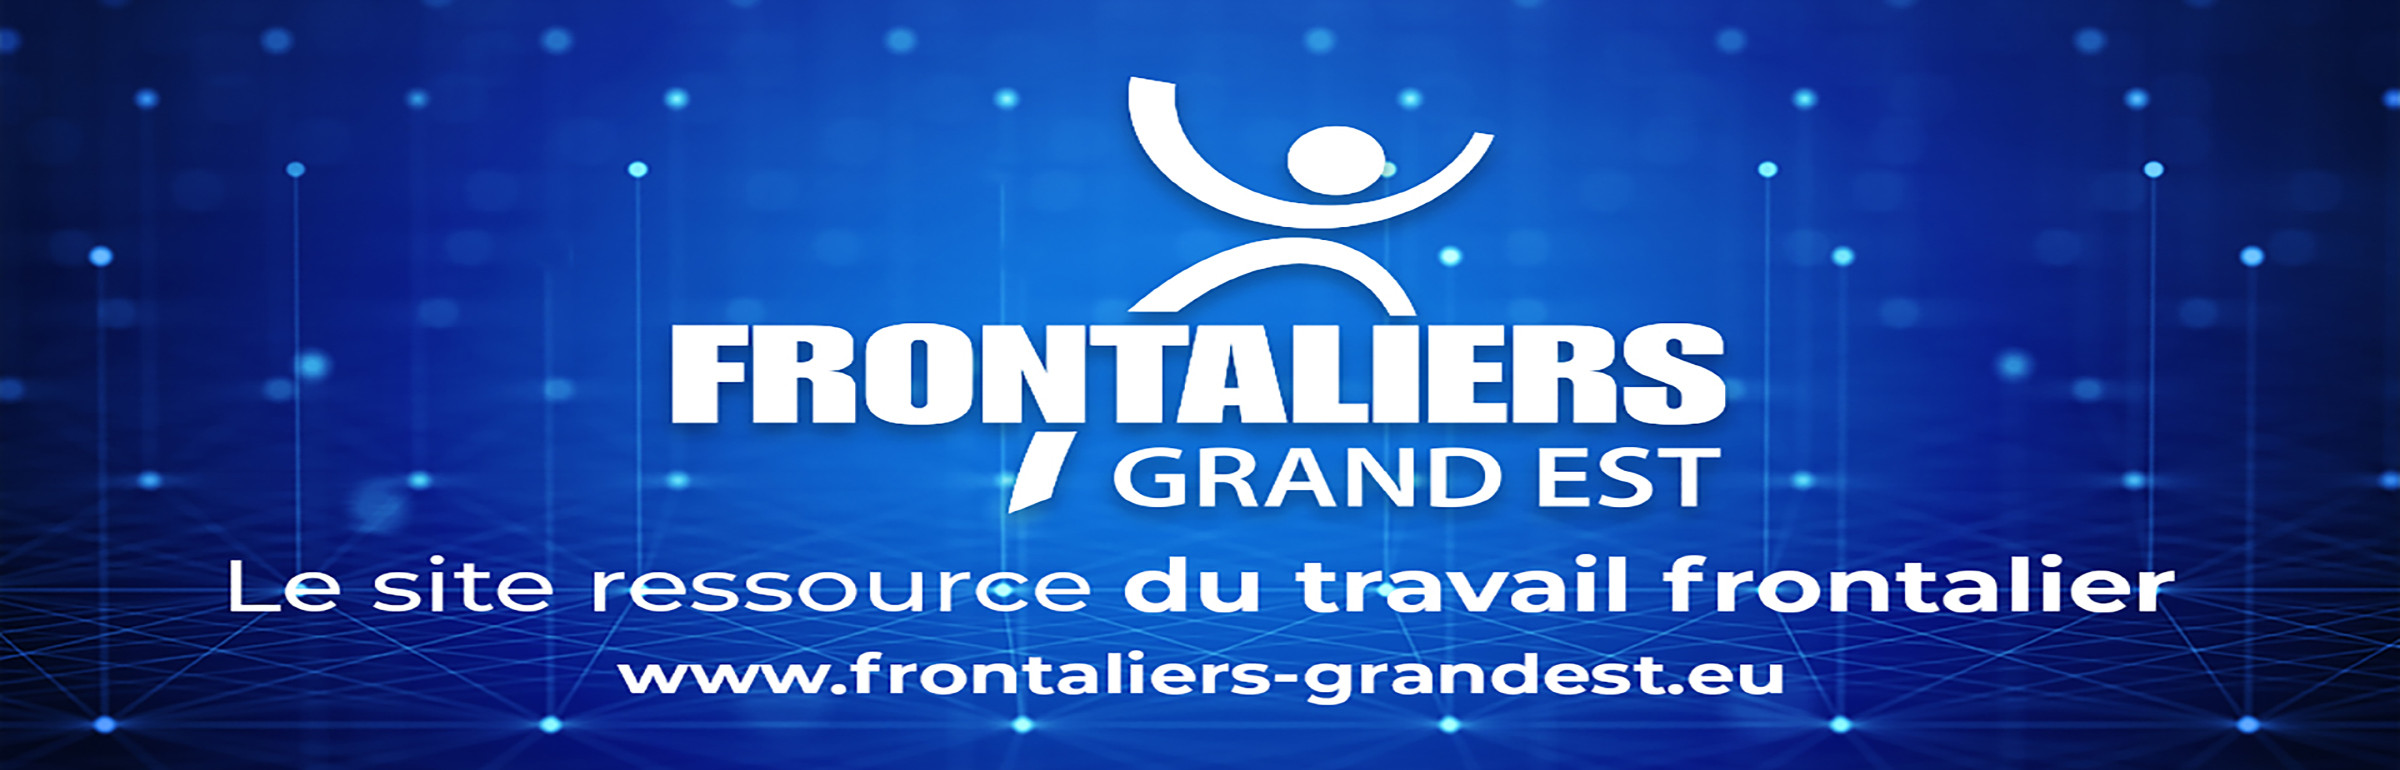 Banner Frontaliers Grand Est